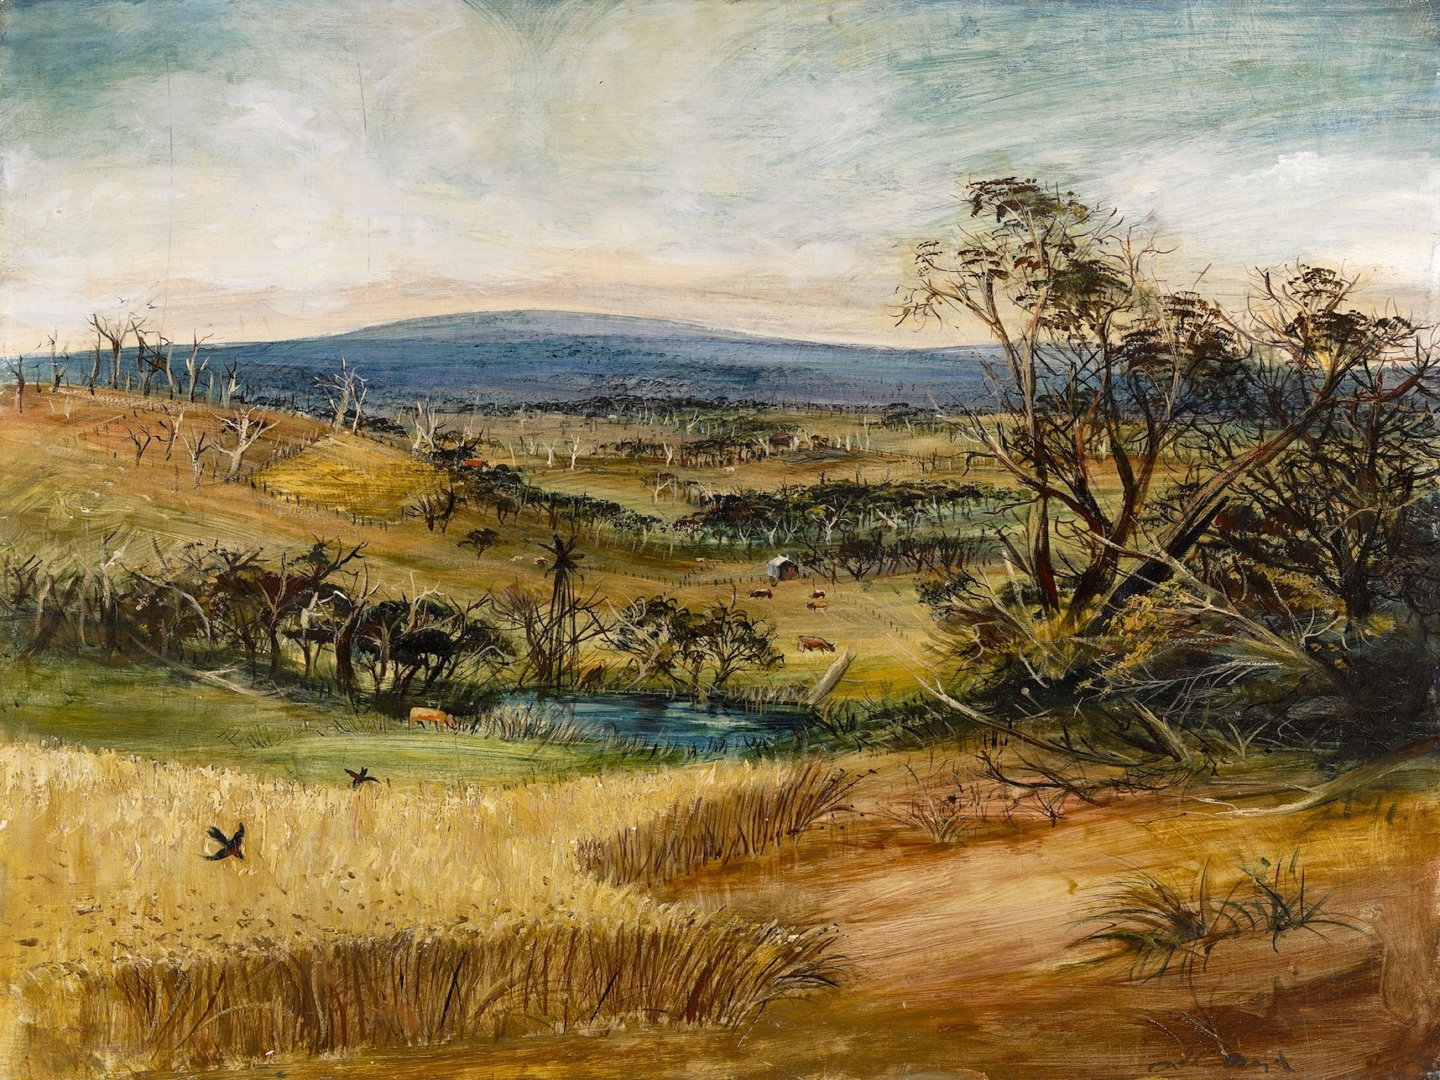 Arthur Boyd, The wheatfield (1948) image